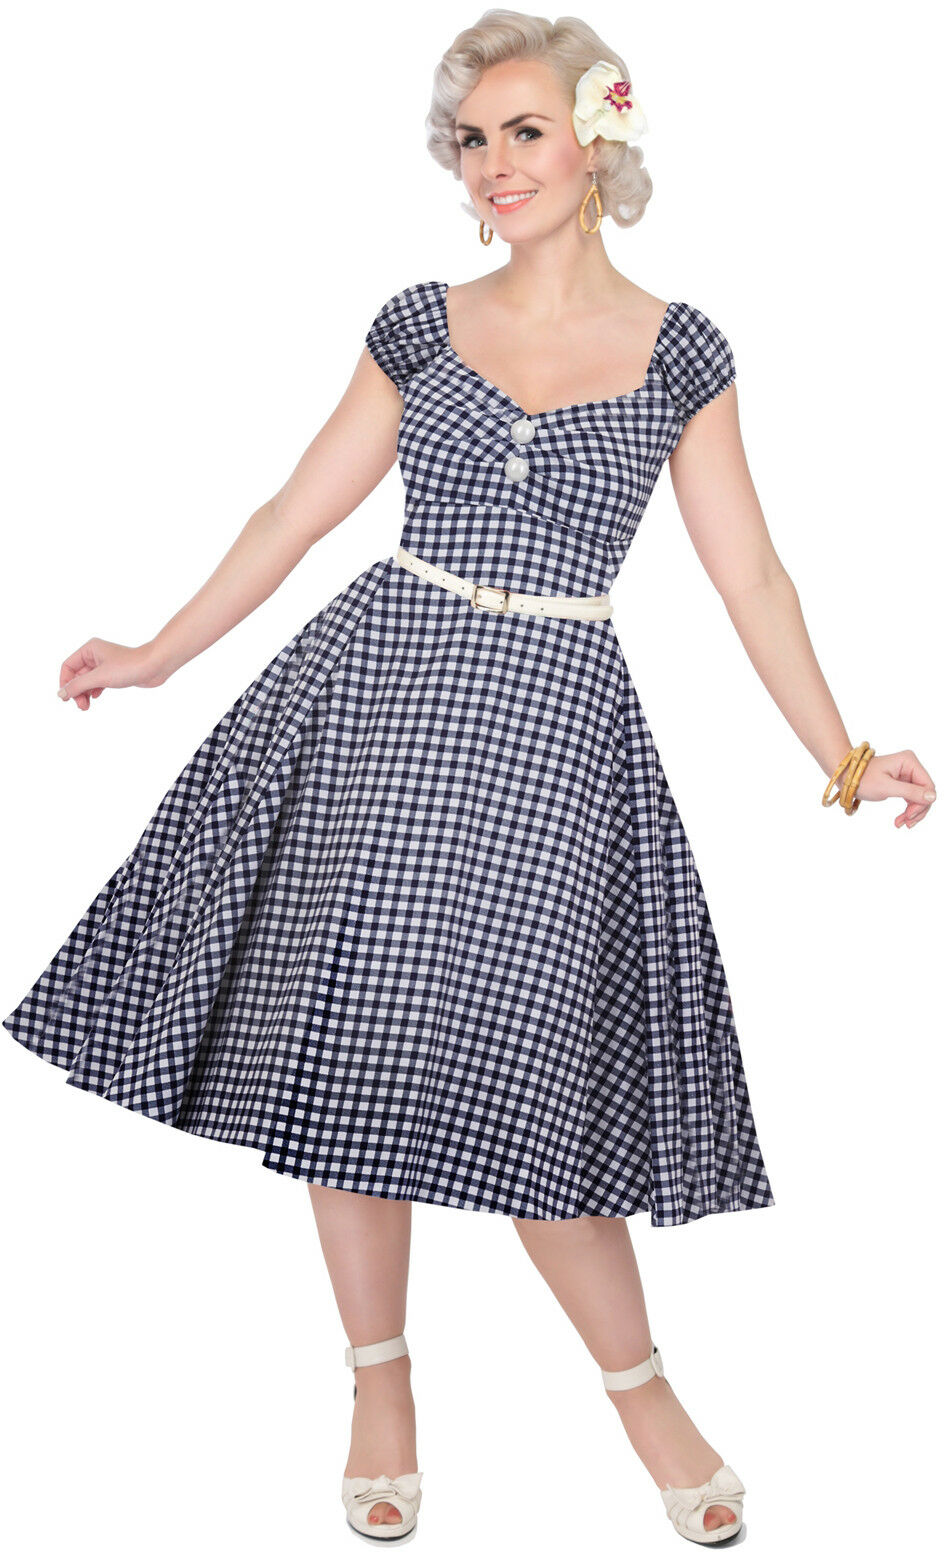 Collectif Dolores Pepita a Gingham Doll Vintage Pin Up Swing Vestito Rockabilly